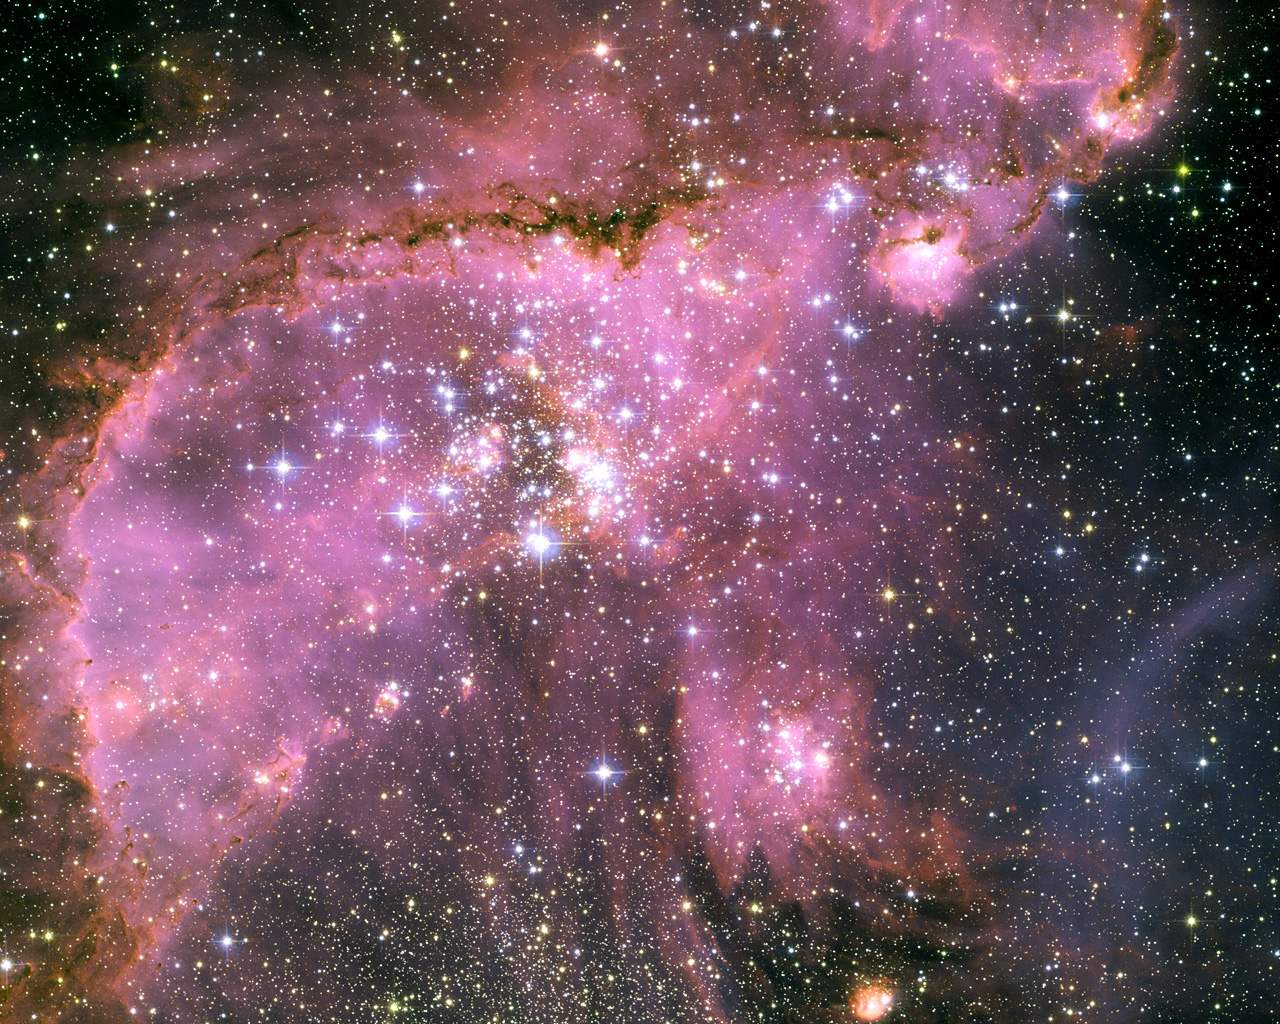 Star cluster NGC 346, Hubble Space Telescope